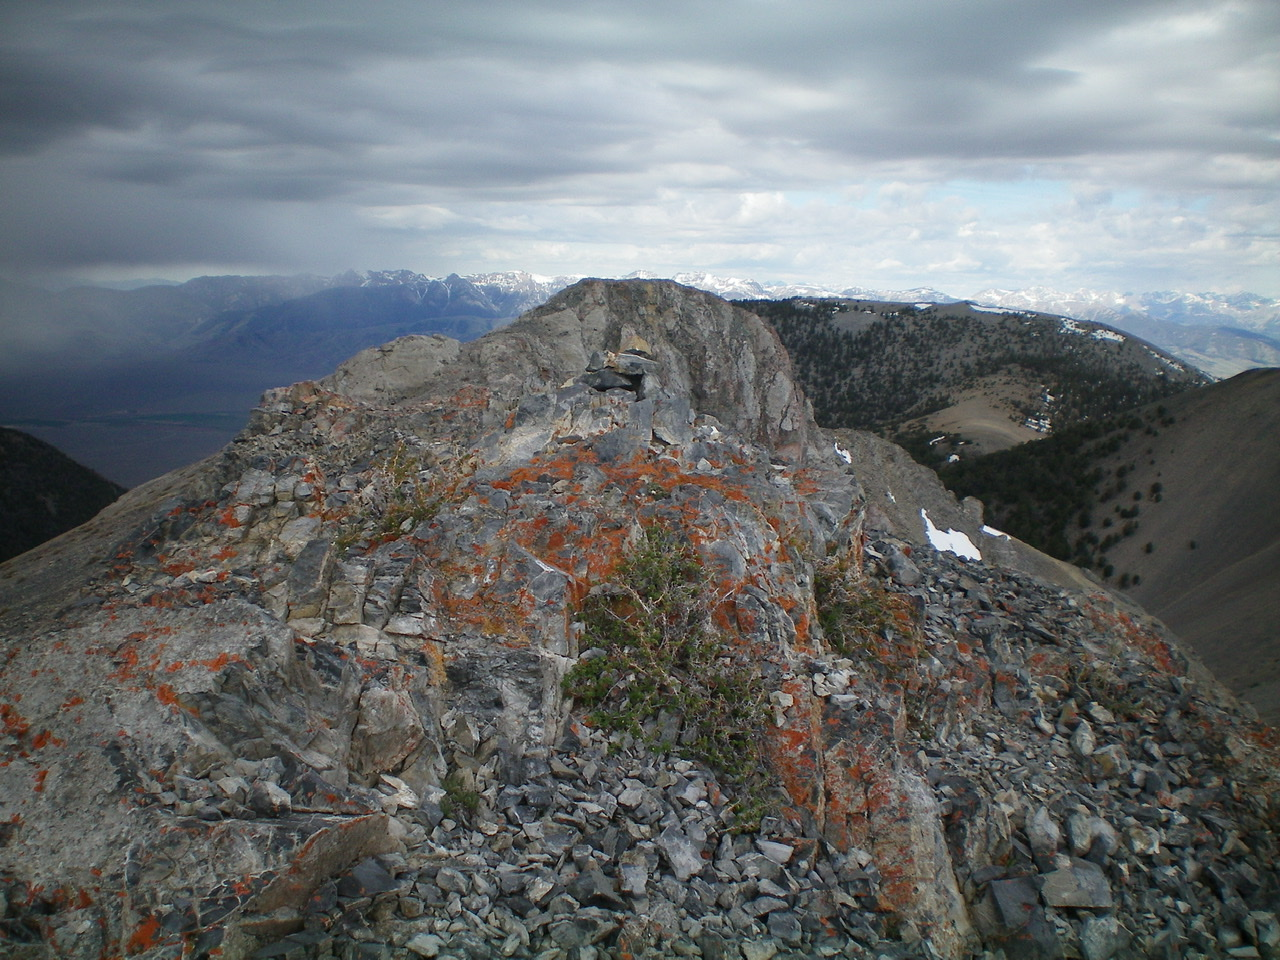 The rocky summit of Dome Peak with its small summit cairn. The false summit is the rocky outcrop in the background. A thunderstorm is rolling in. Livingston Douglas Photo